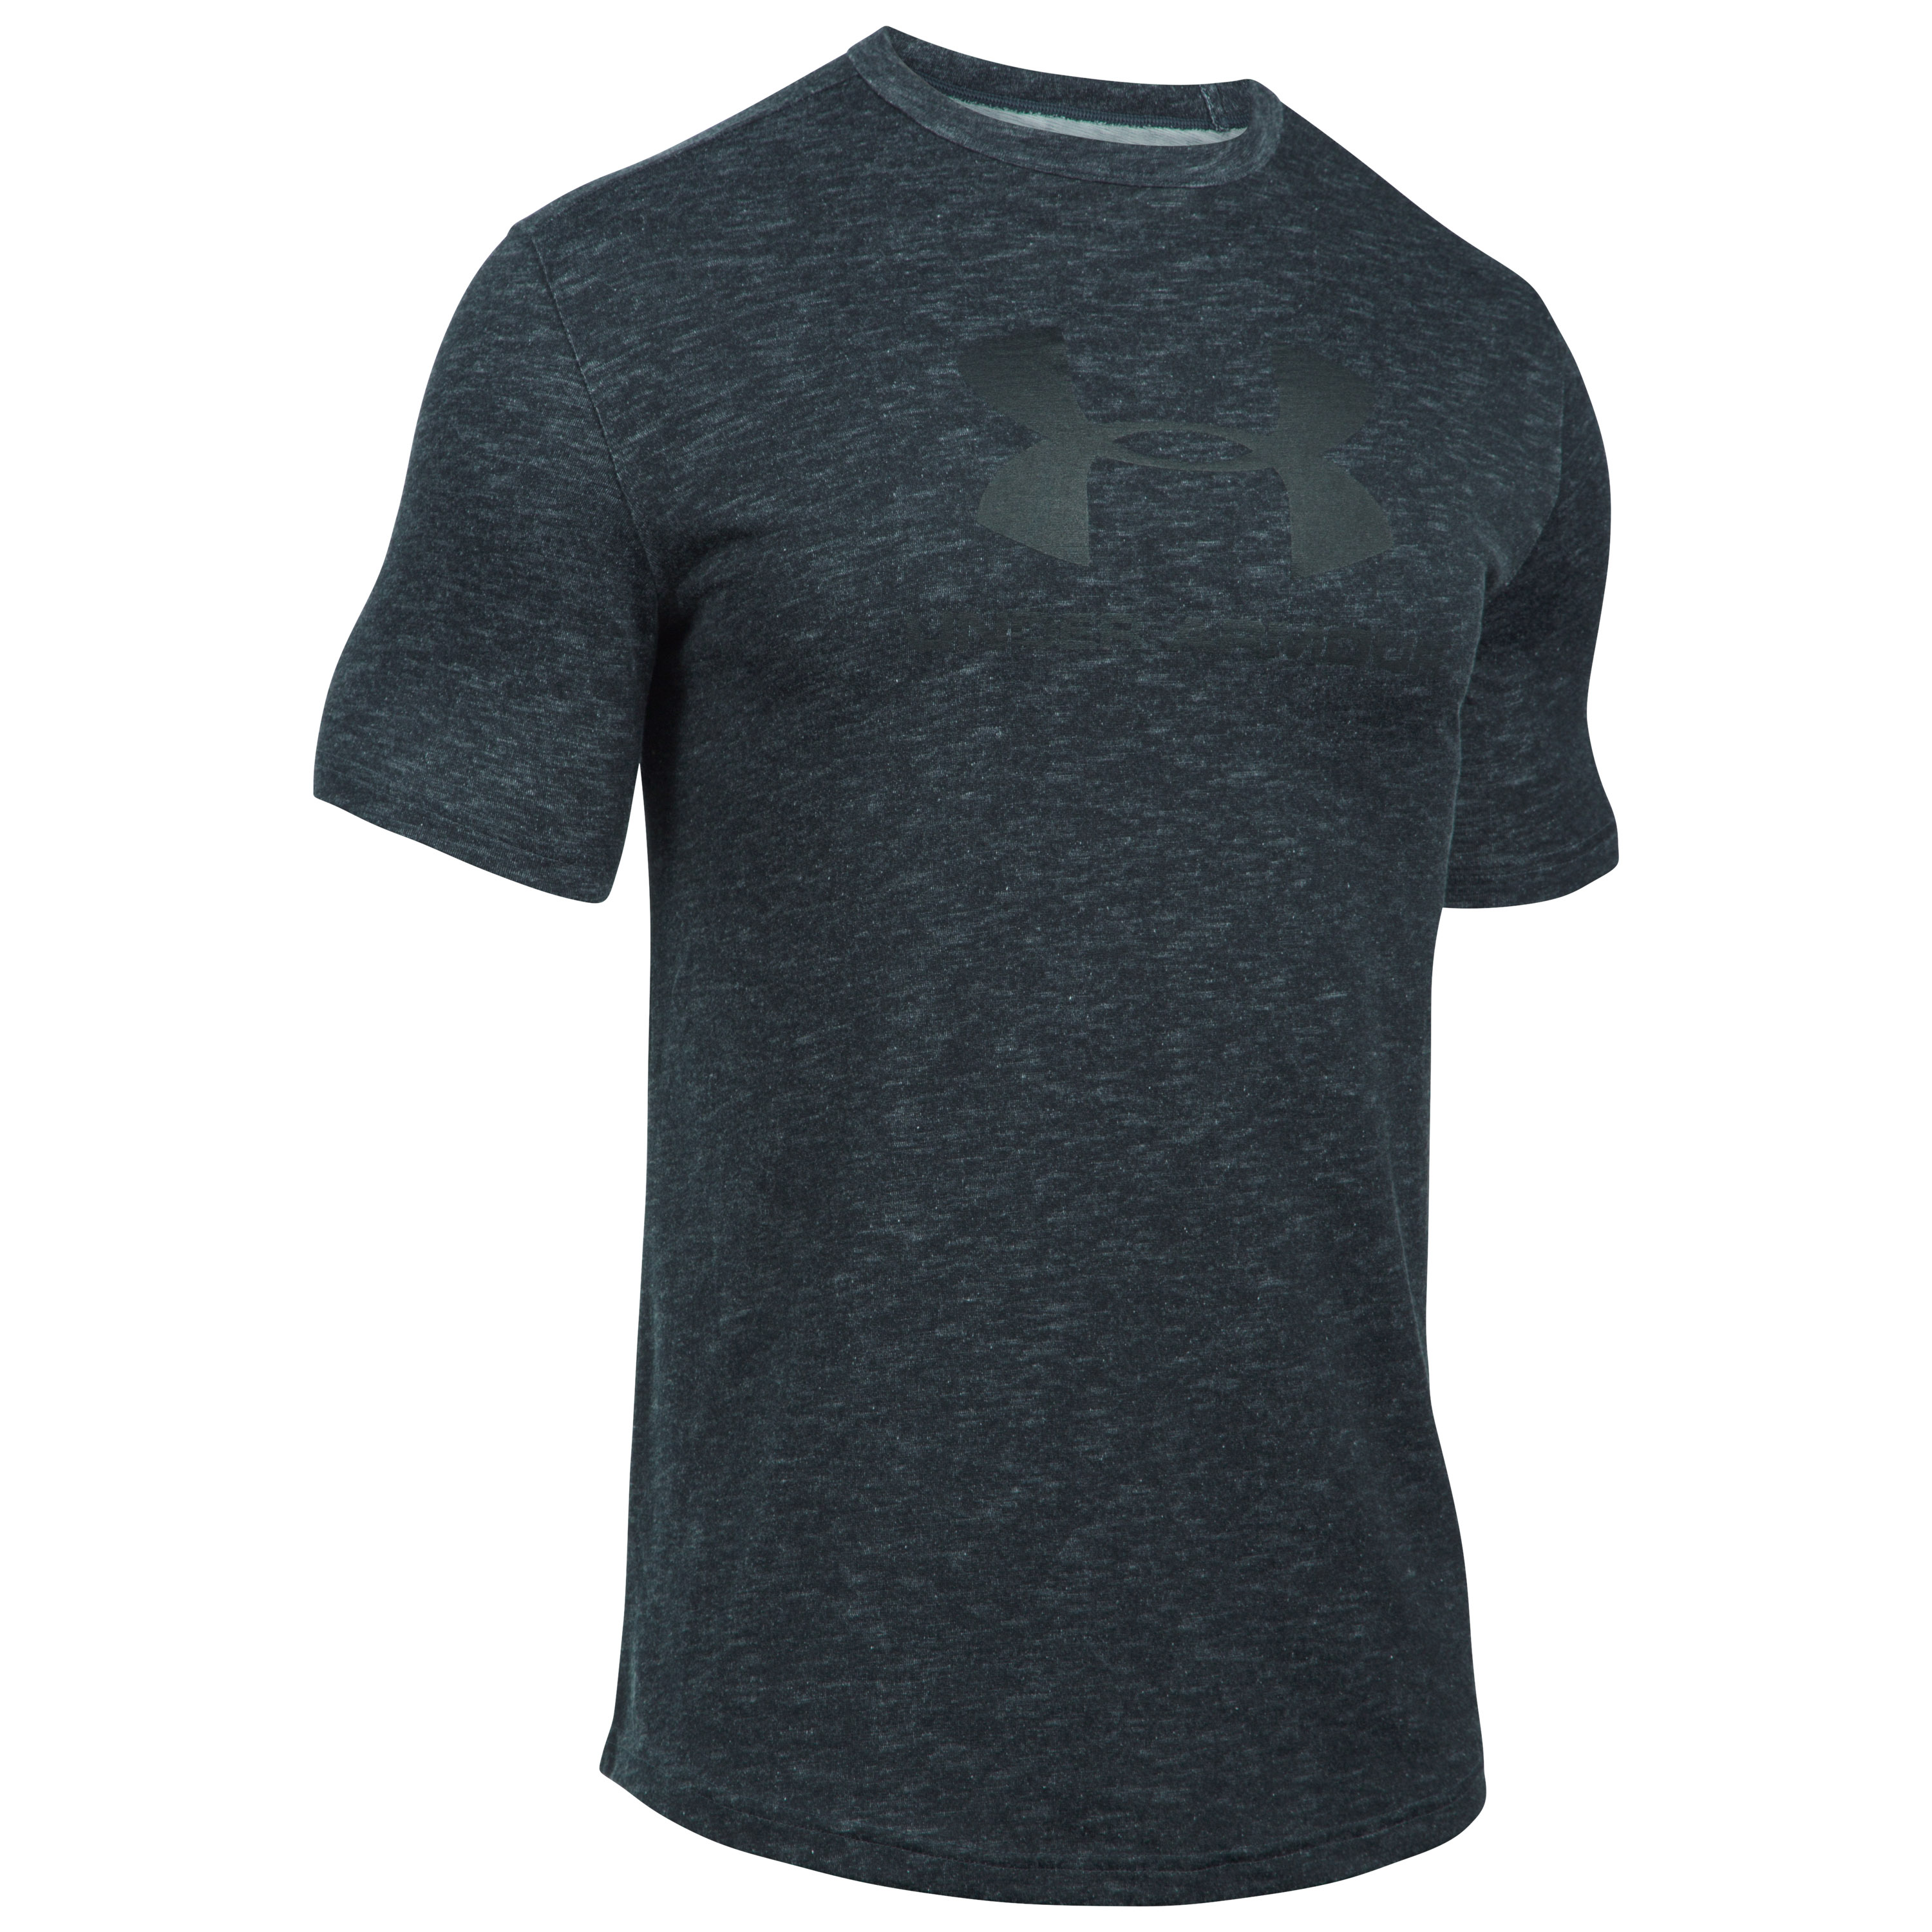 Under Armour Fitness T-Shirt Sport Style Branded Tee black